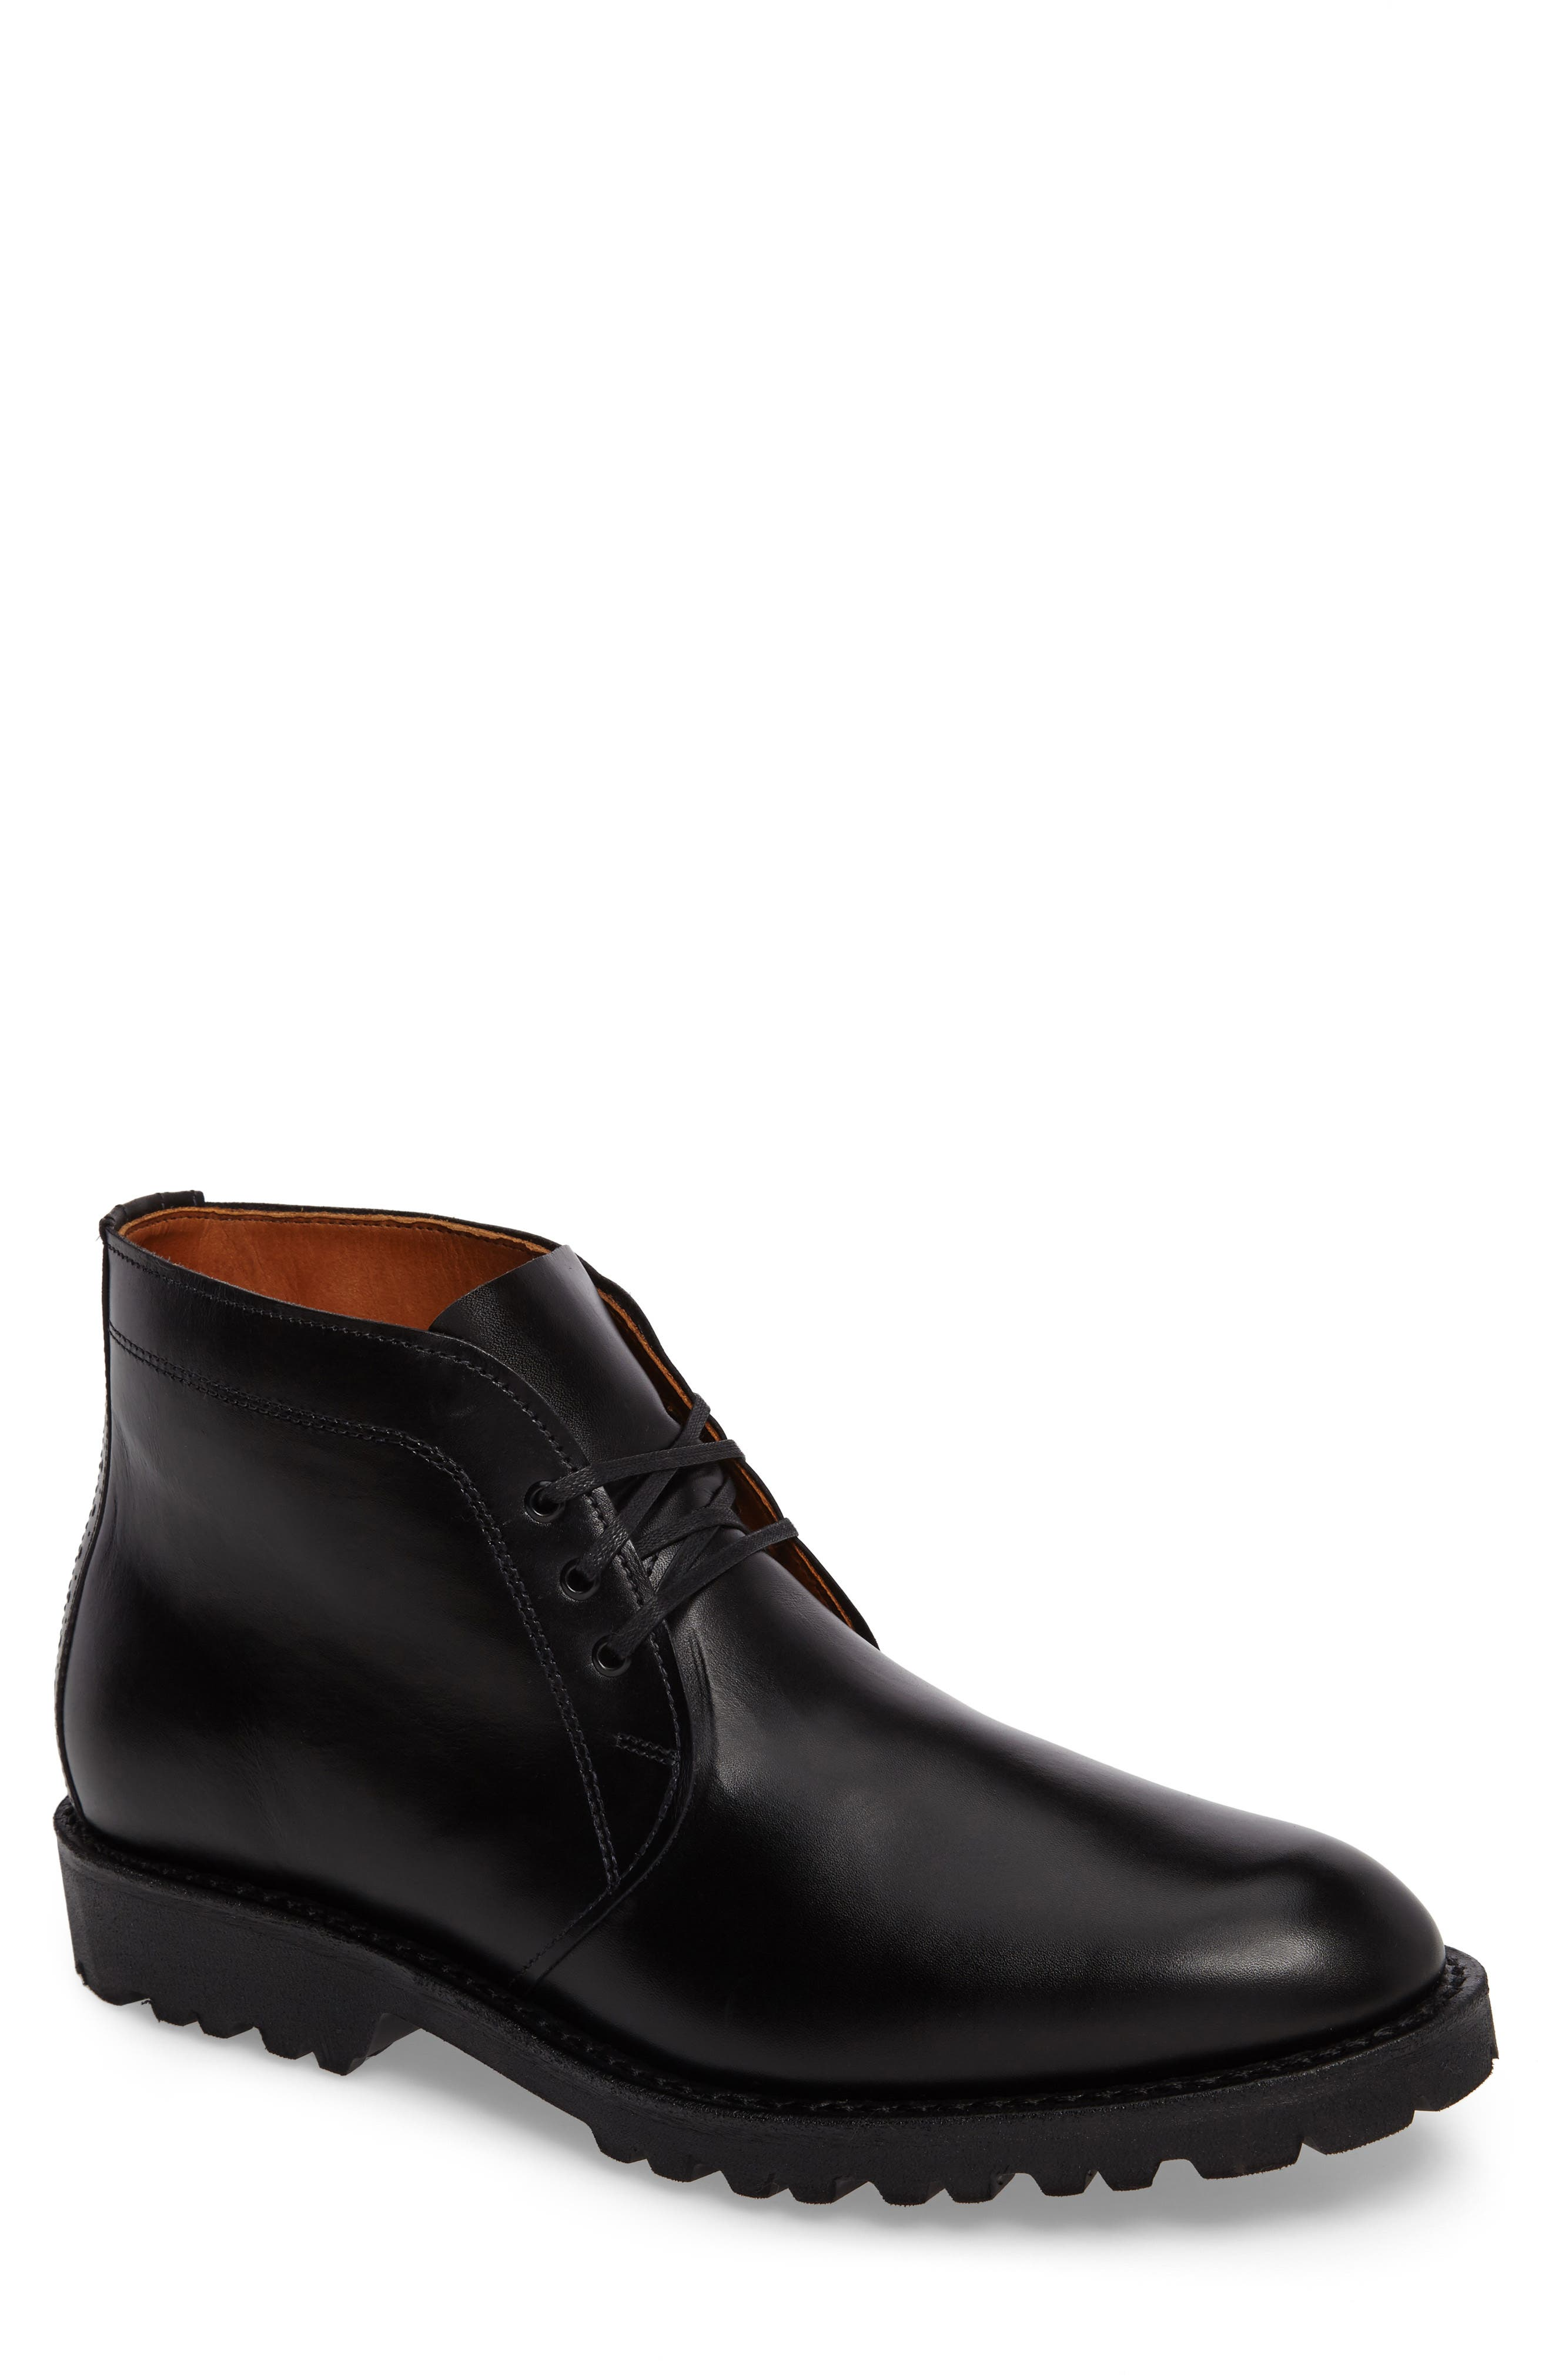 Tate Chukka Boot,                         Main,                         color, 001